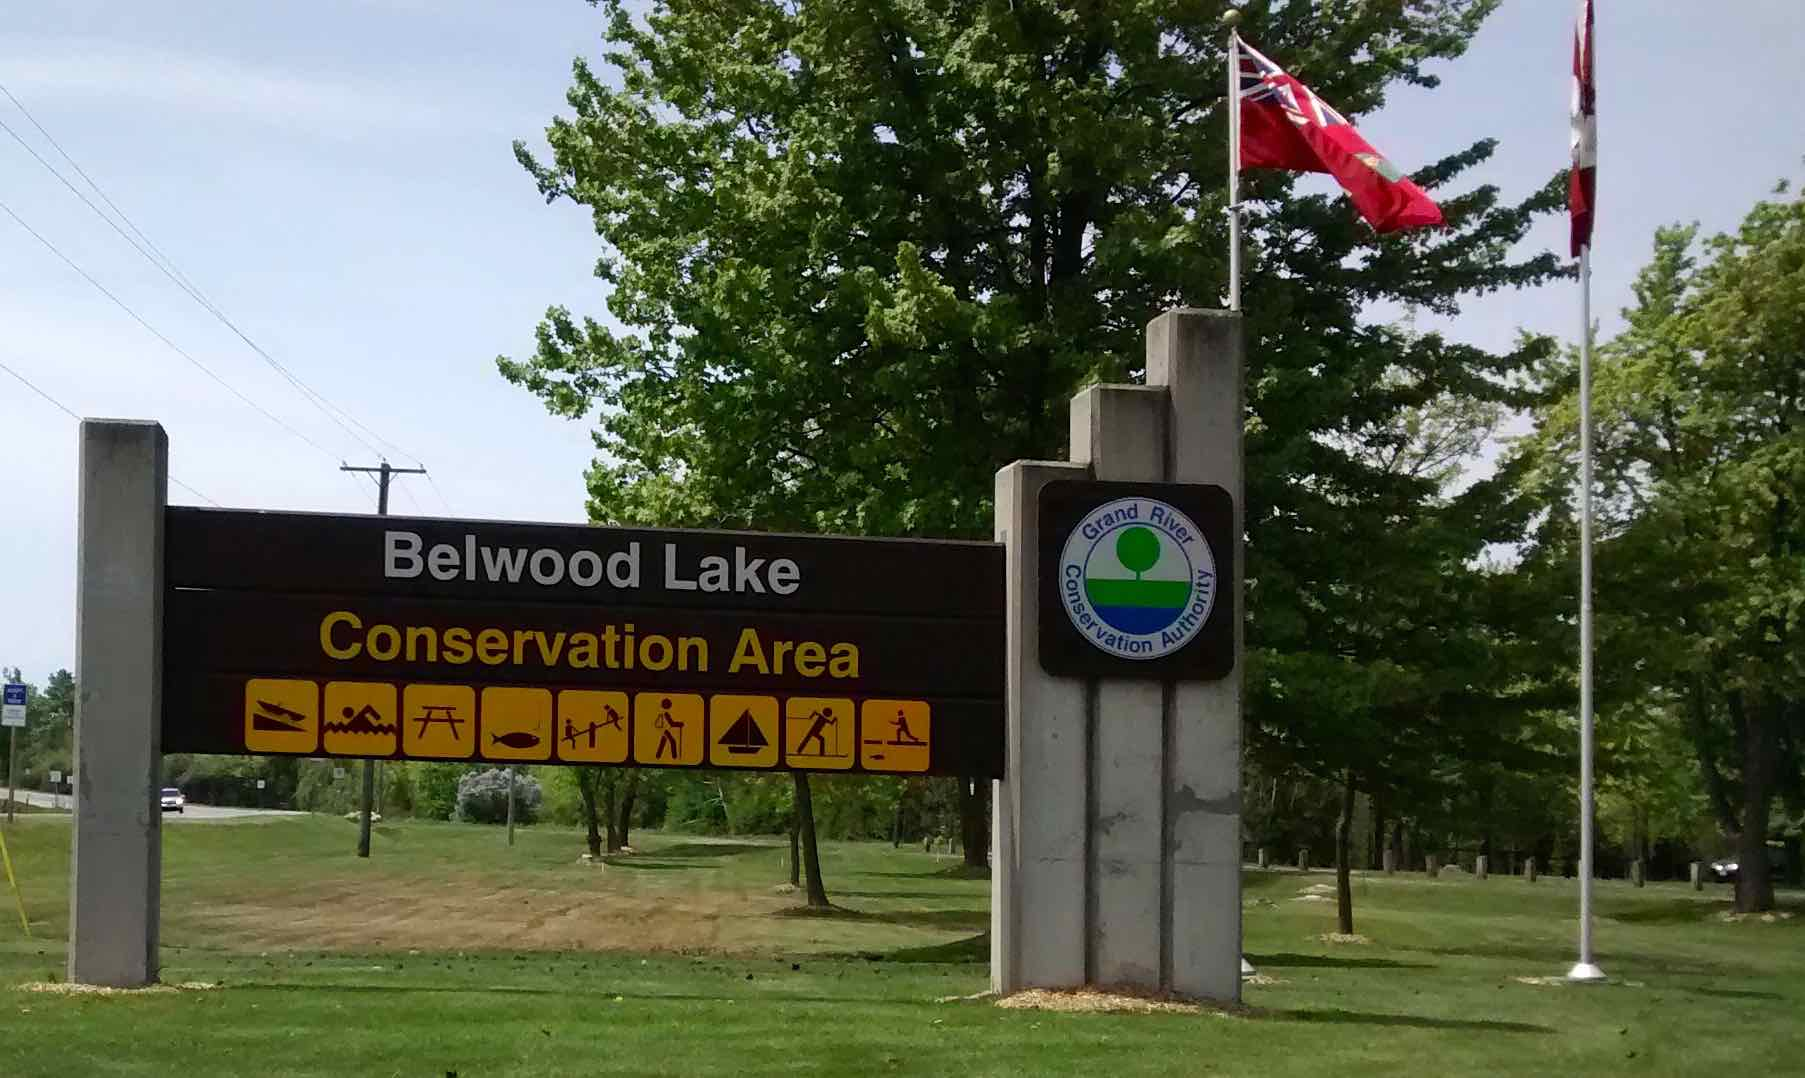 Belwood Lake Conservation Area Gate BB